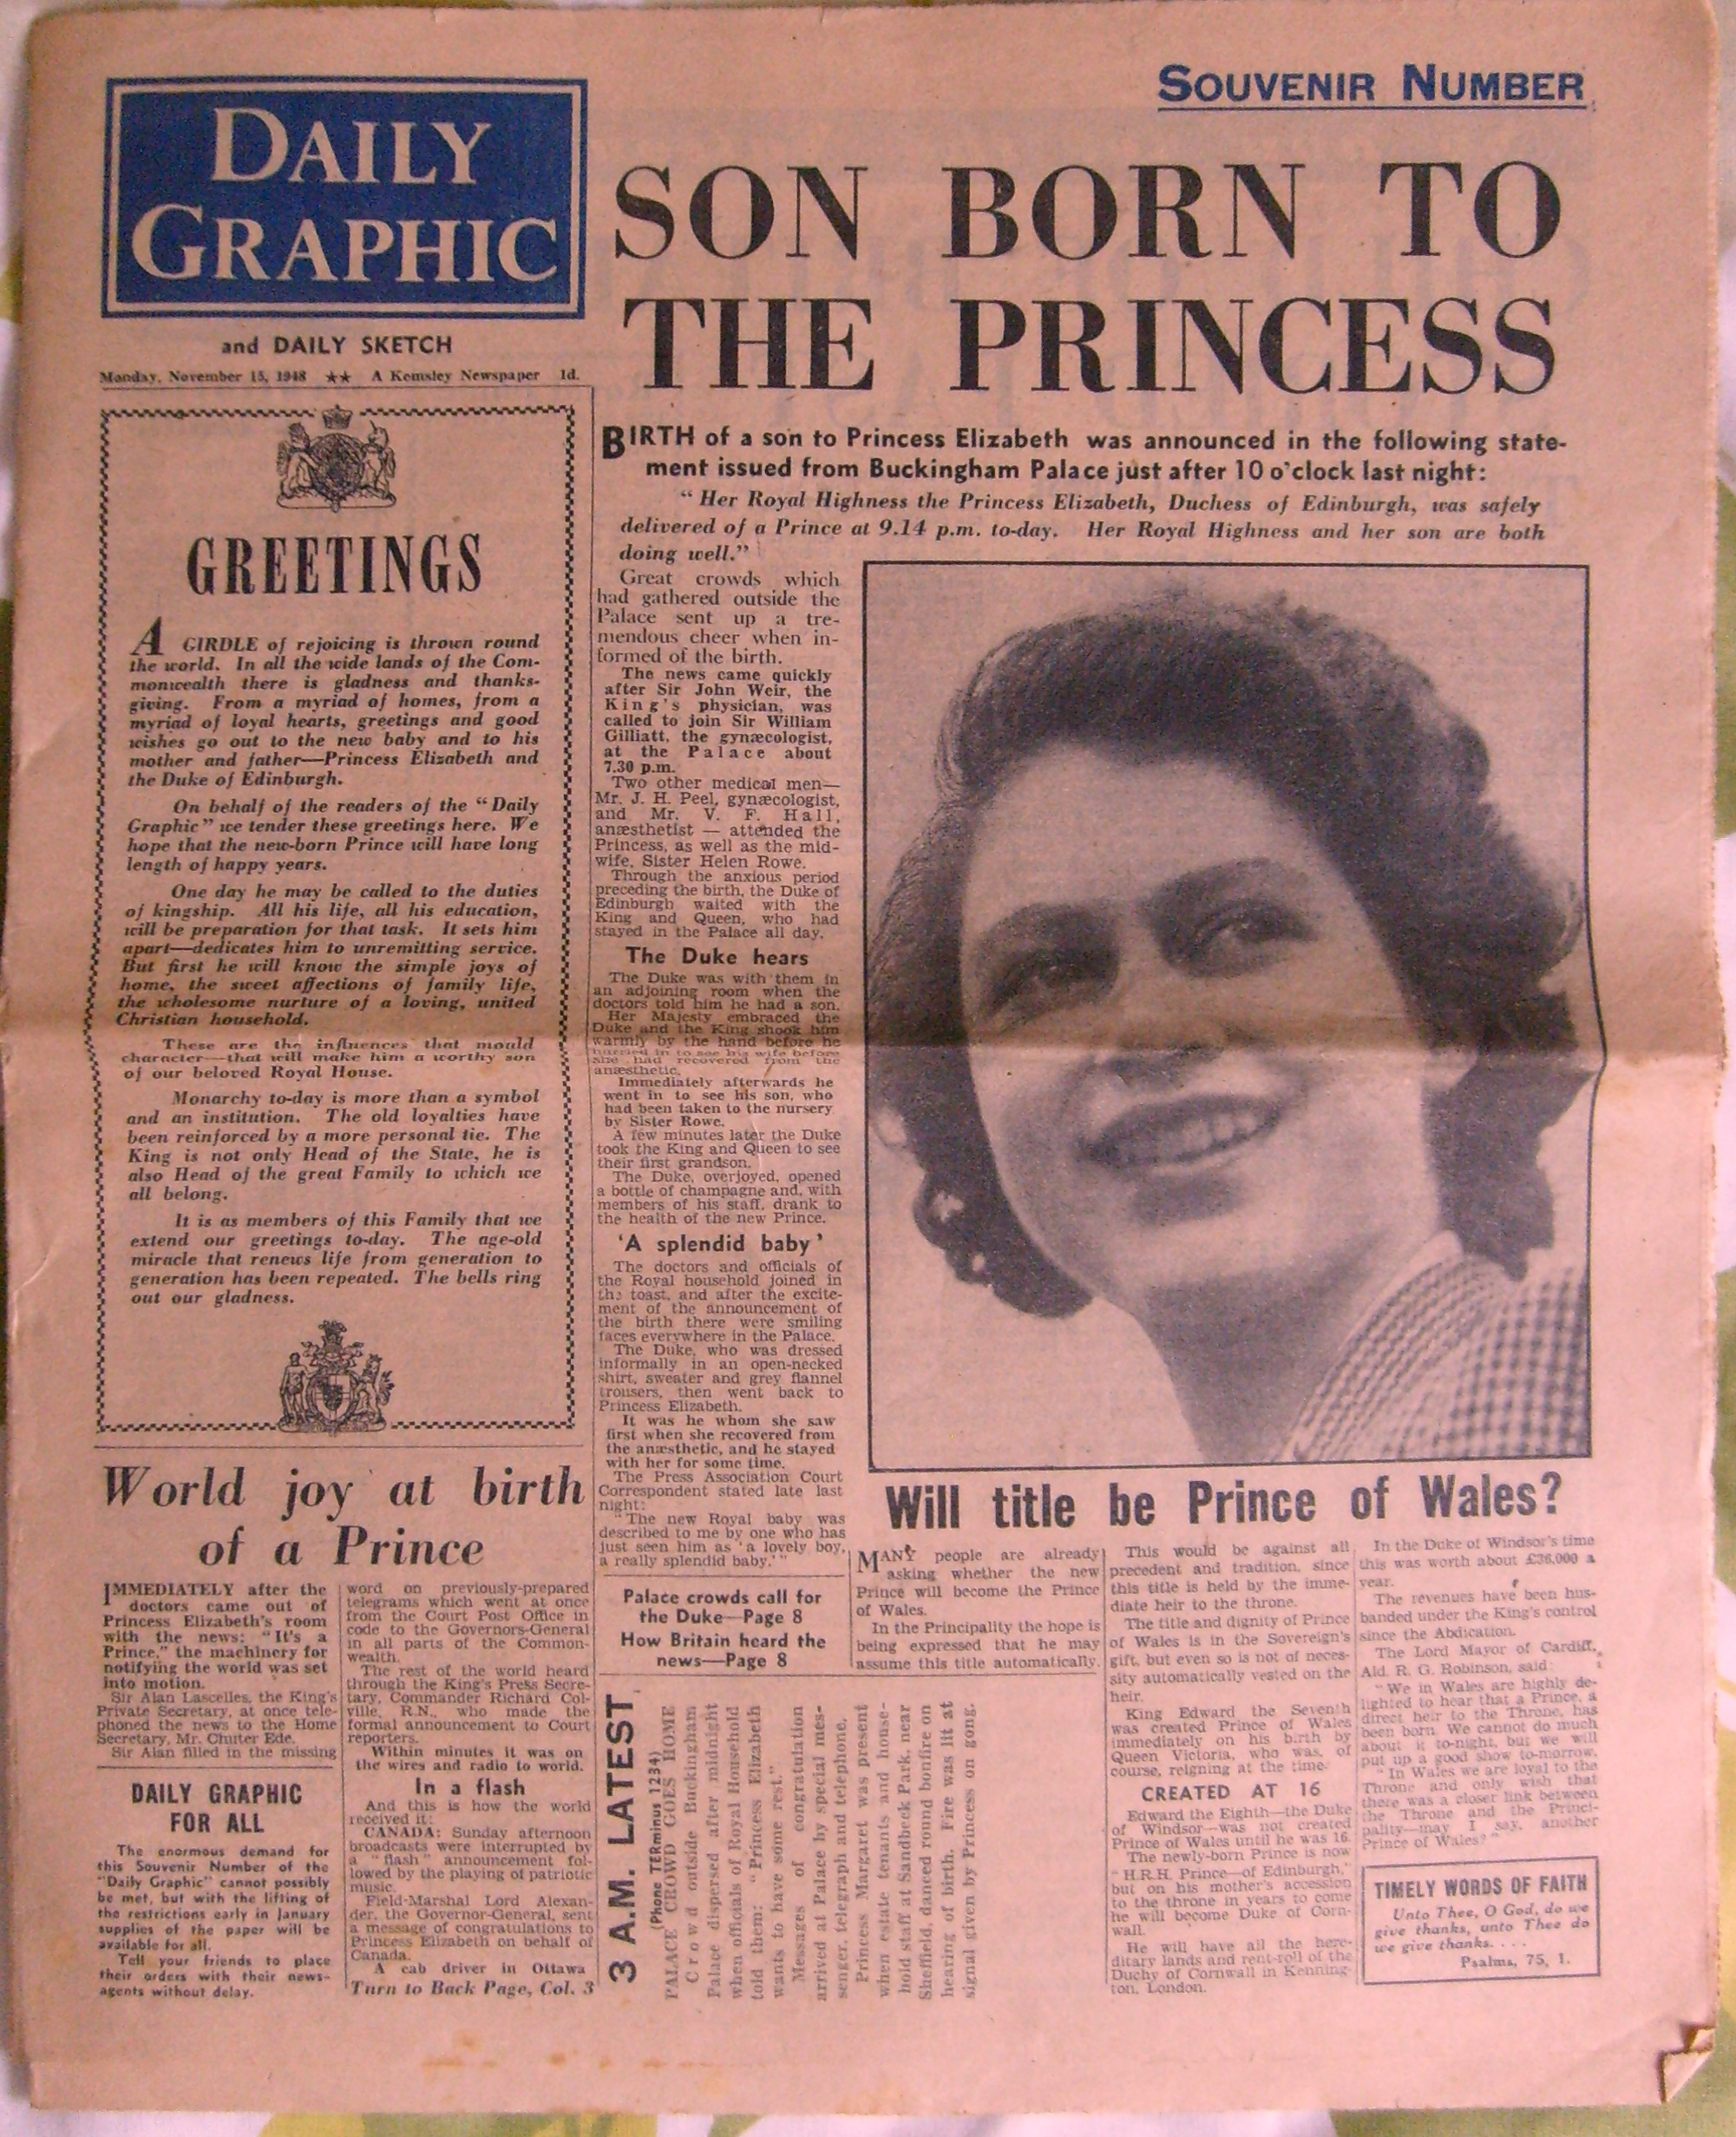 Daily Graphic - Son born to the Princess